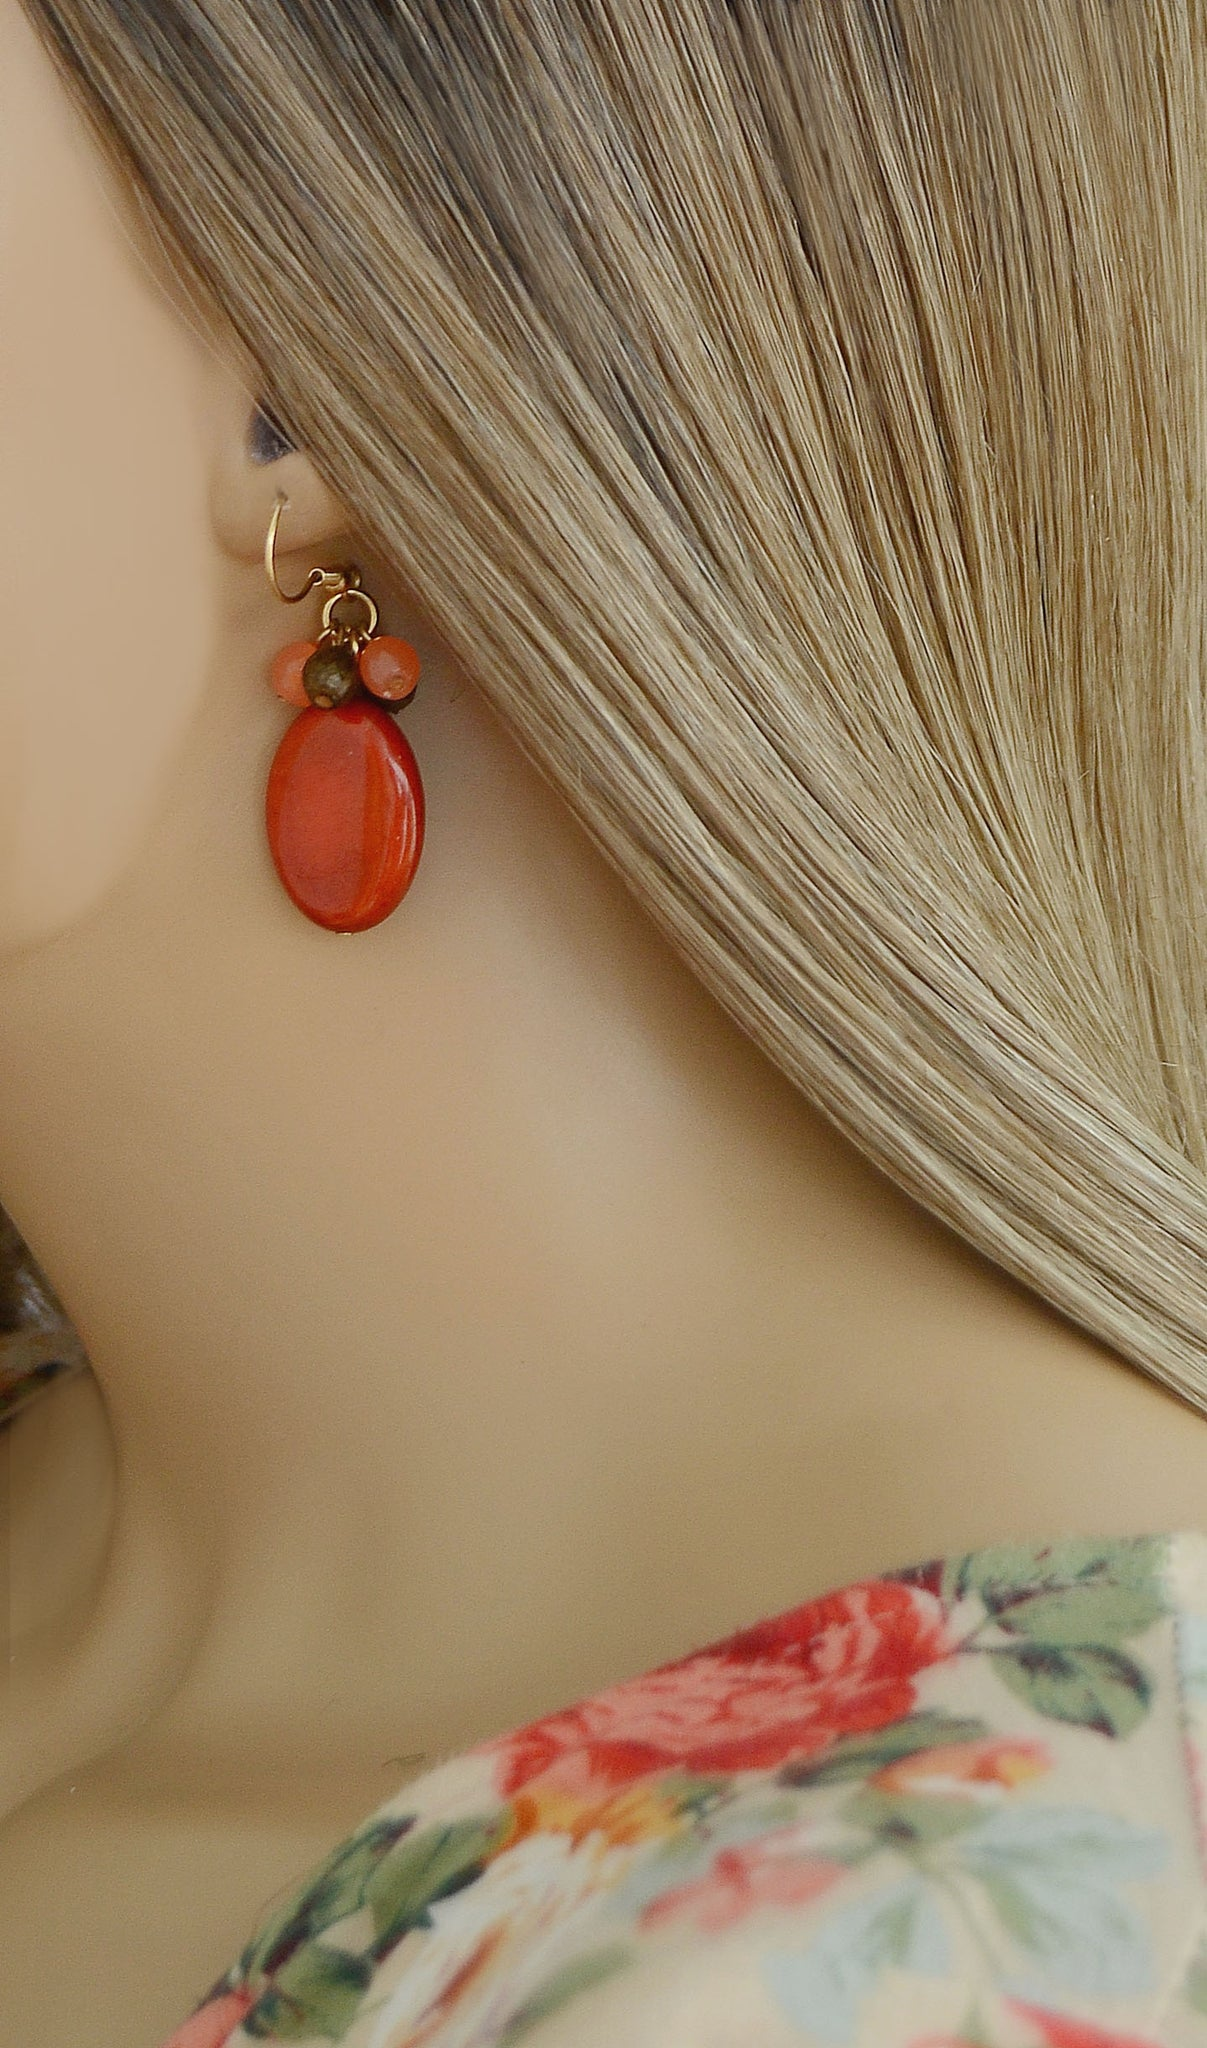 Women's Reddish/ Coral Stone Fashion Earrings